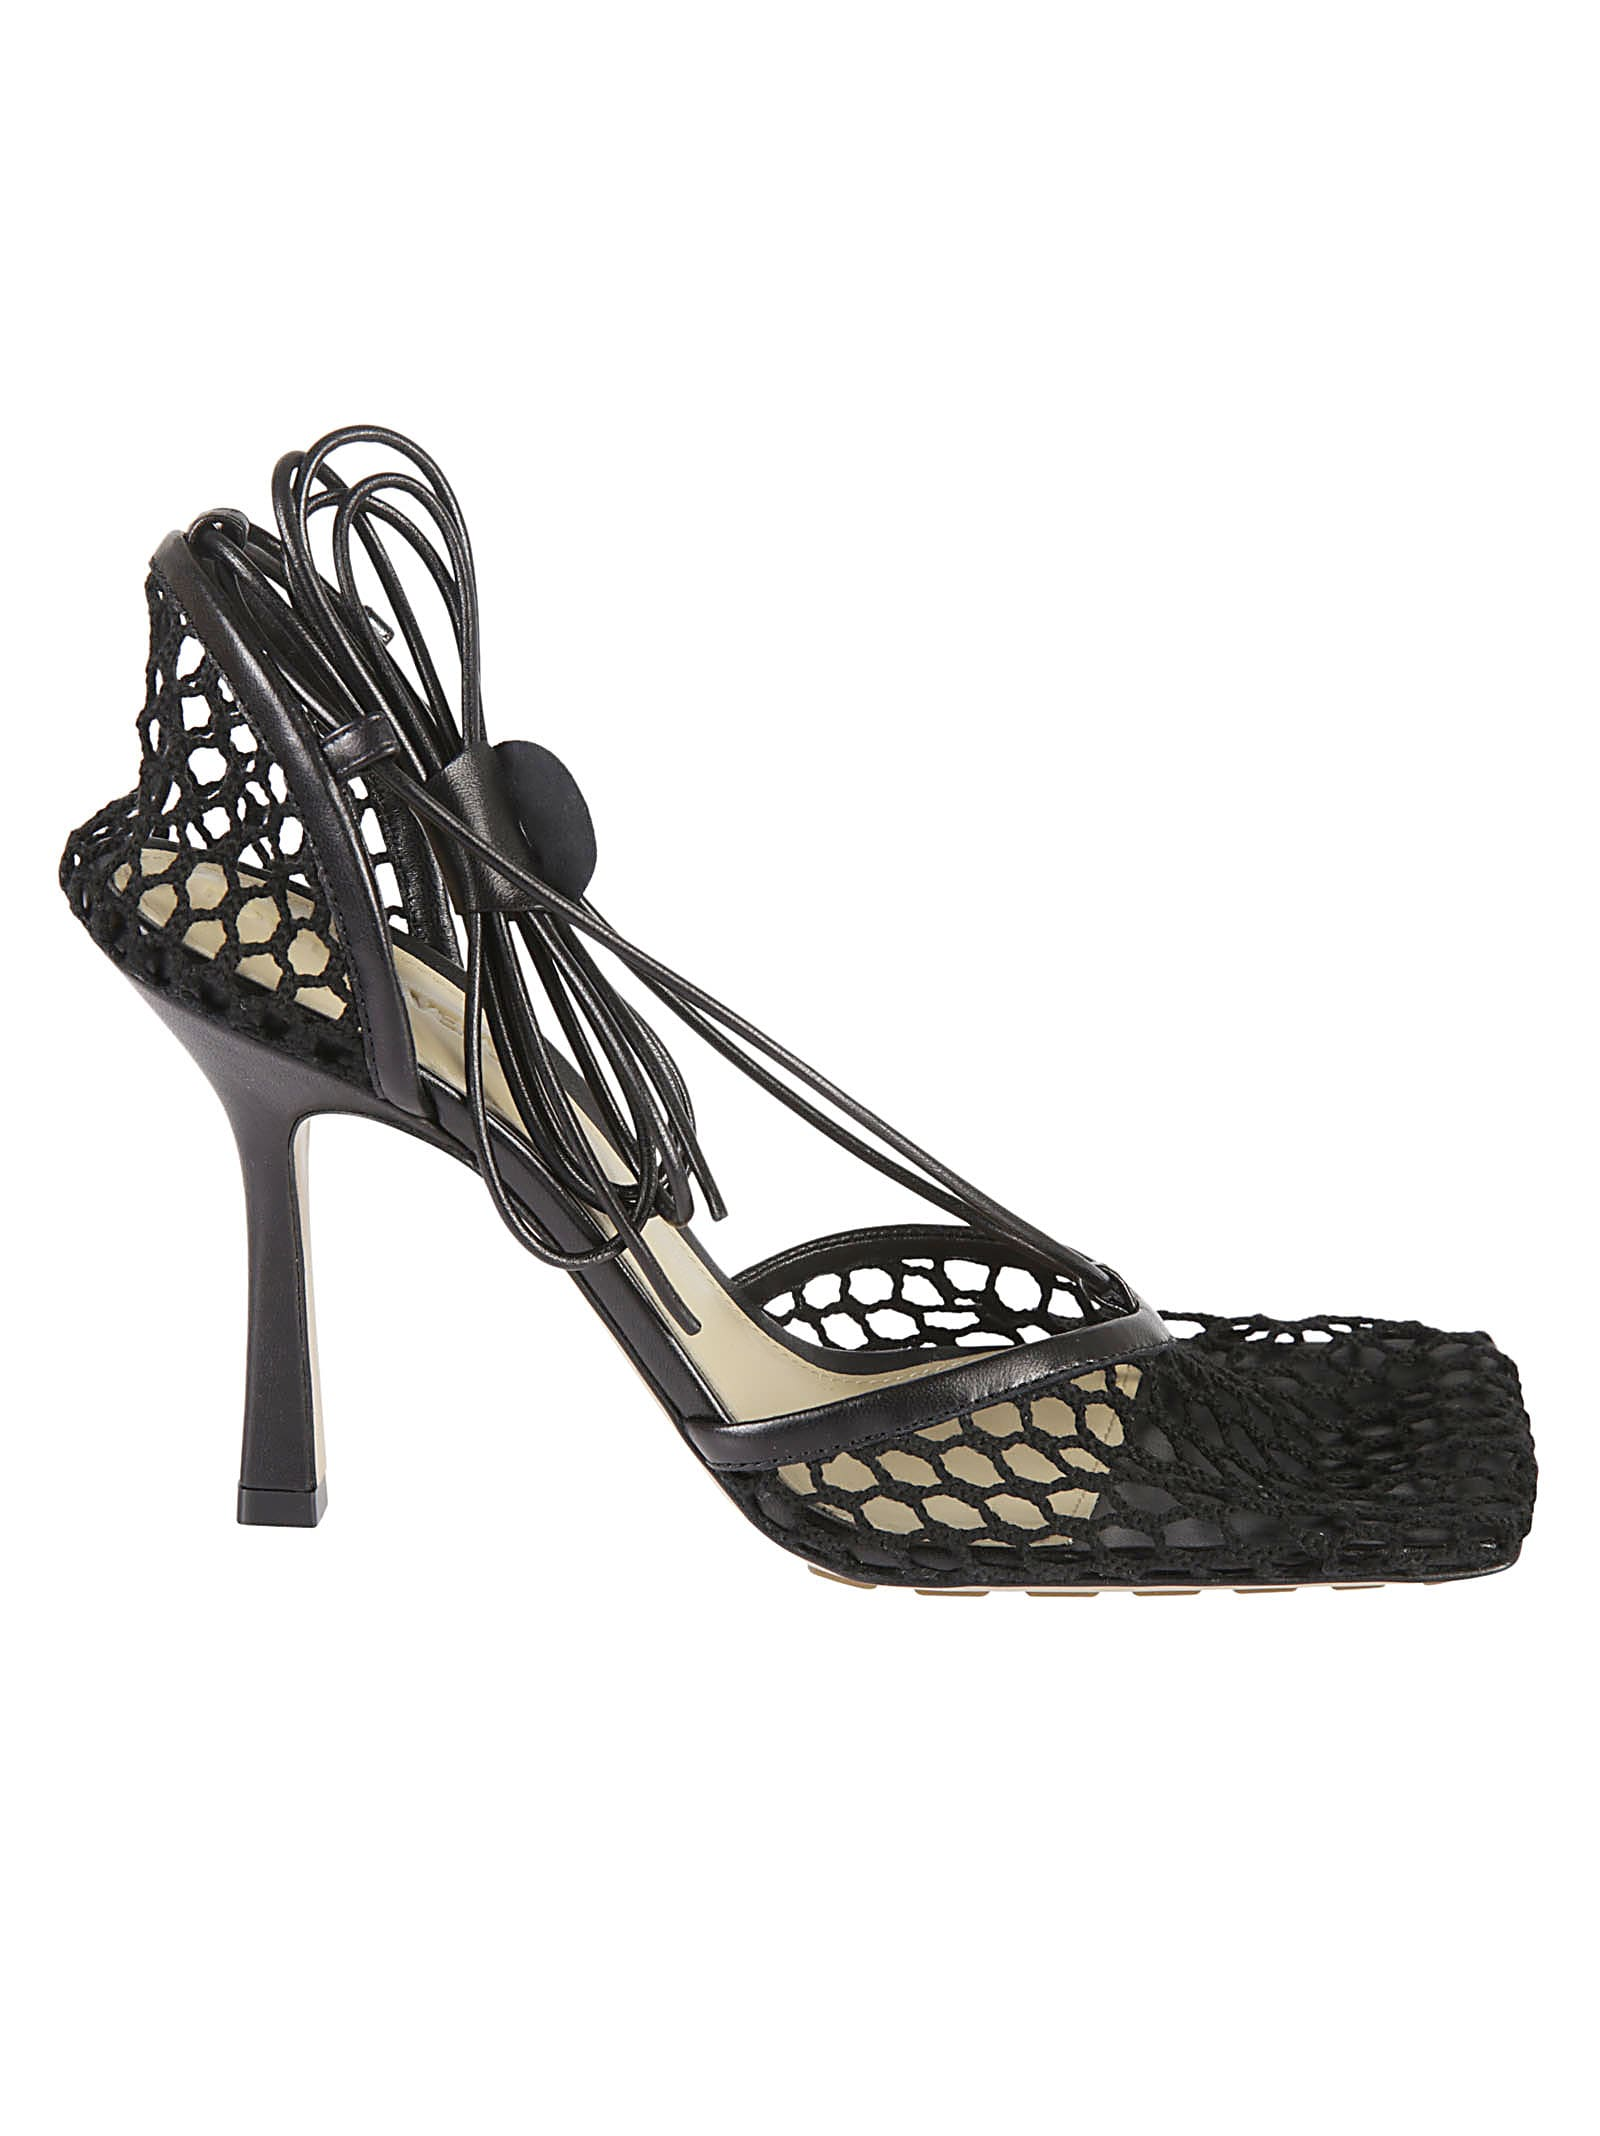 Bottega Veneta STRETCH WEB SANDALS